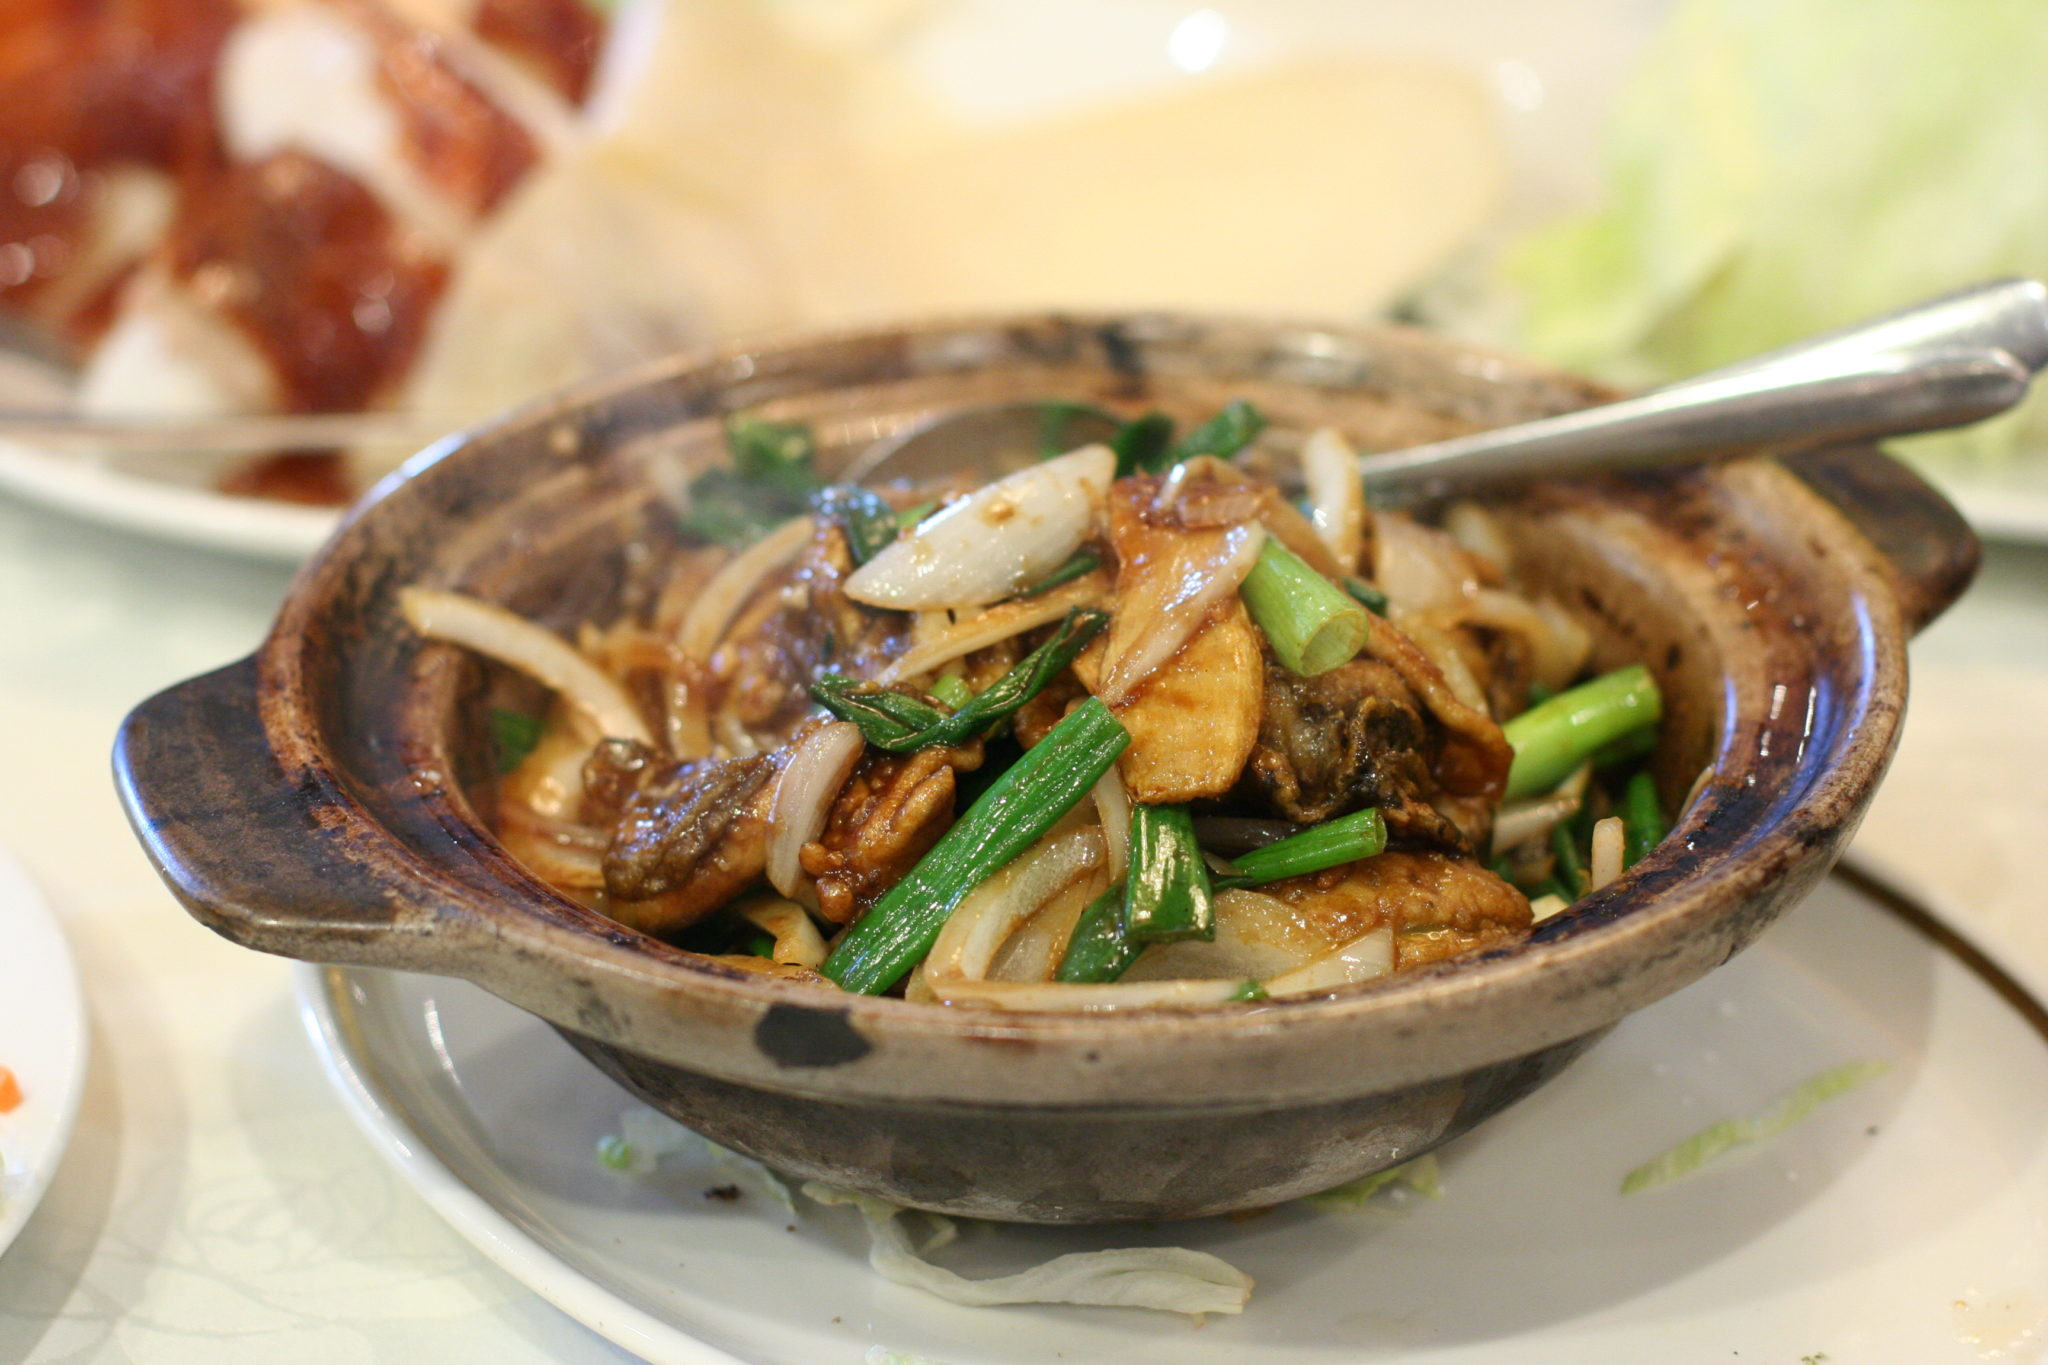 Oysters with Ginger and Scallions